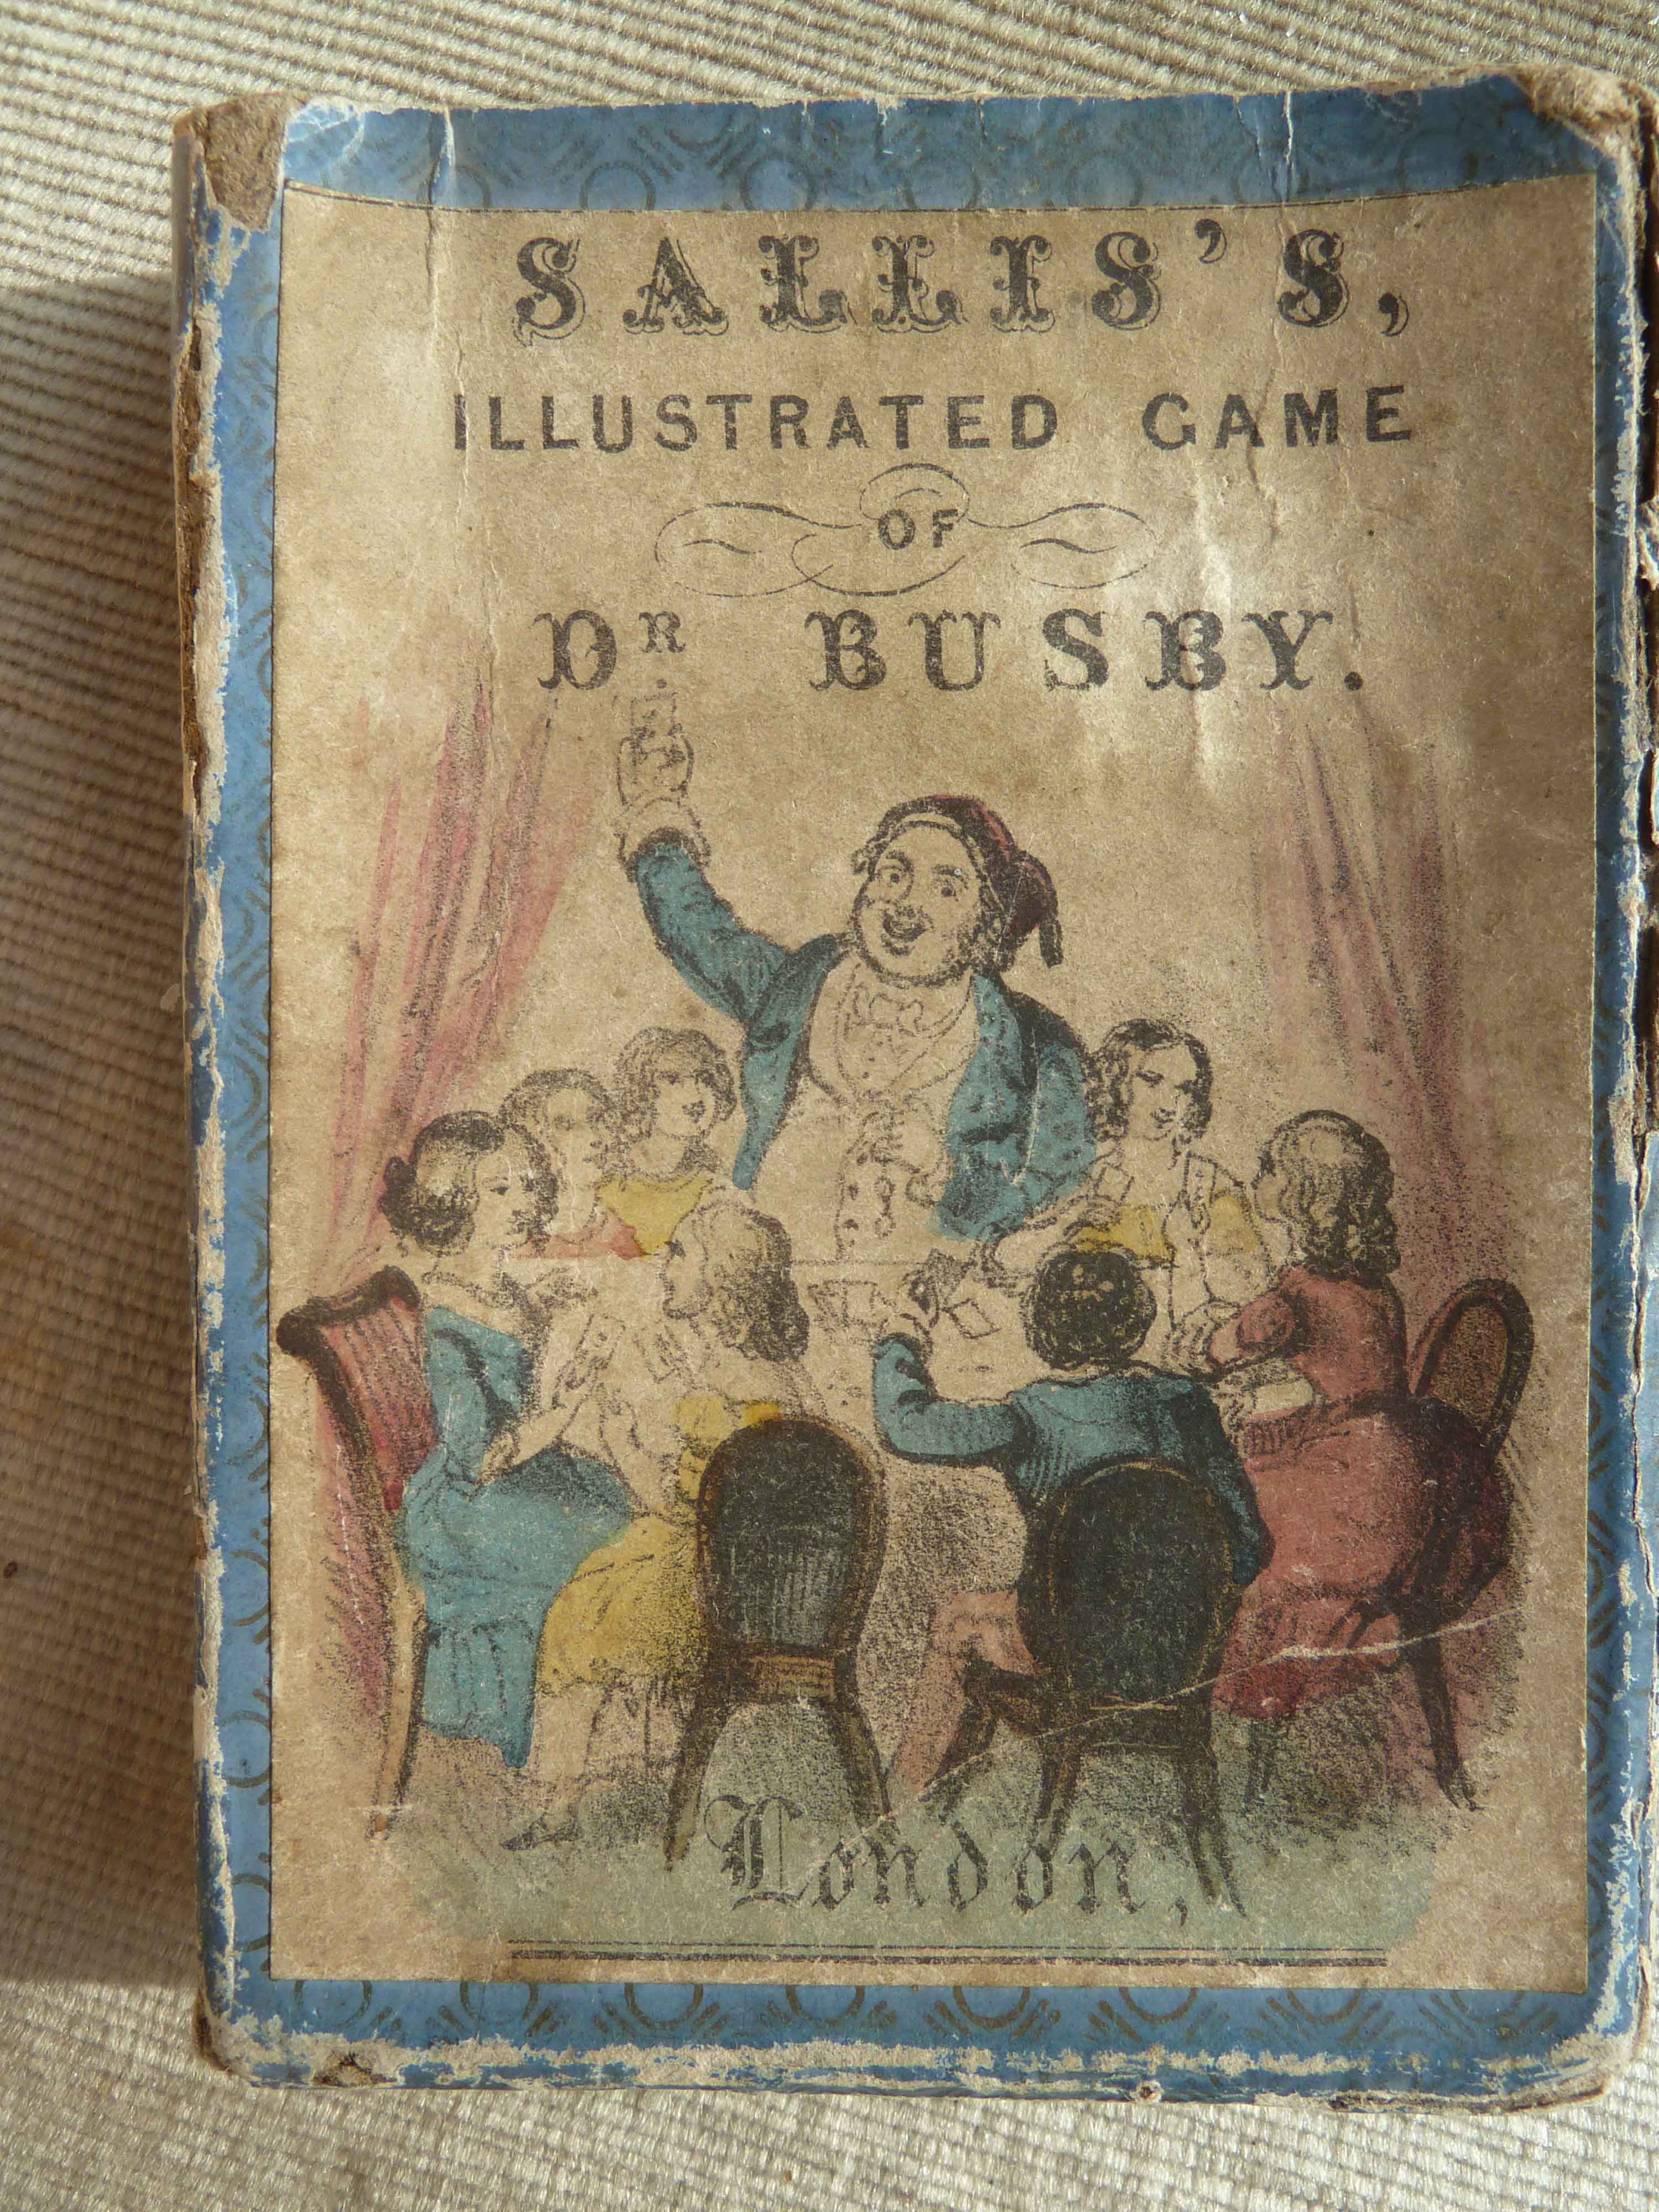 Slip case of Sallis's Illustrated Game of Dr. Busby, showing children playing game, around 1850